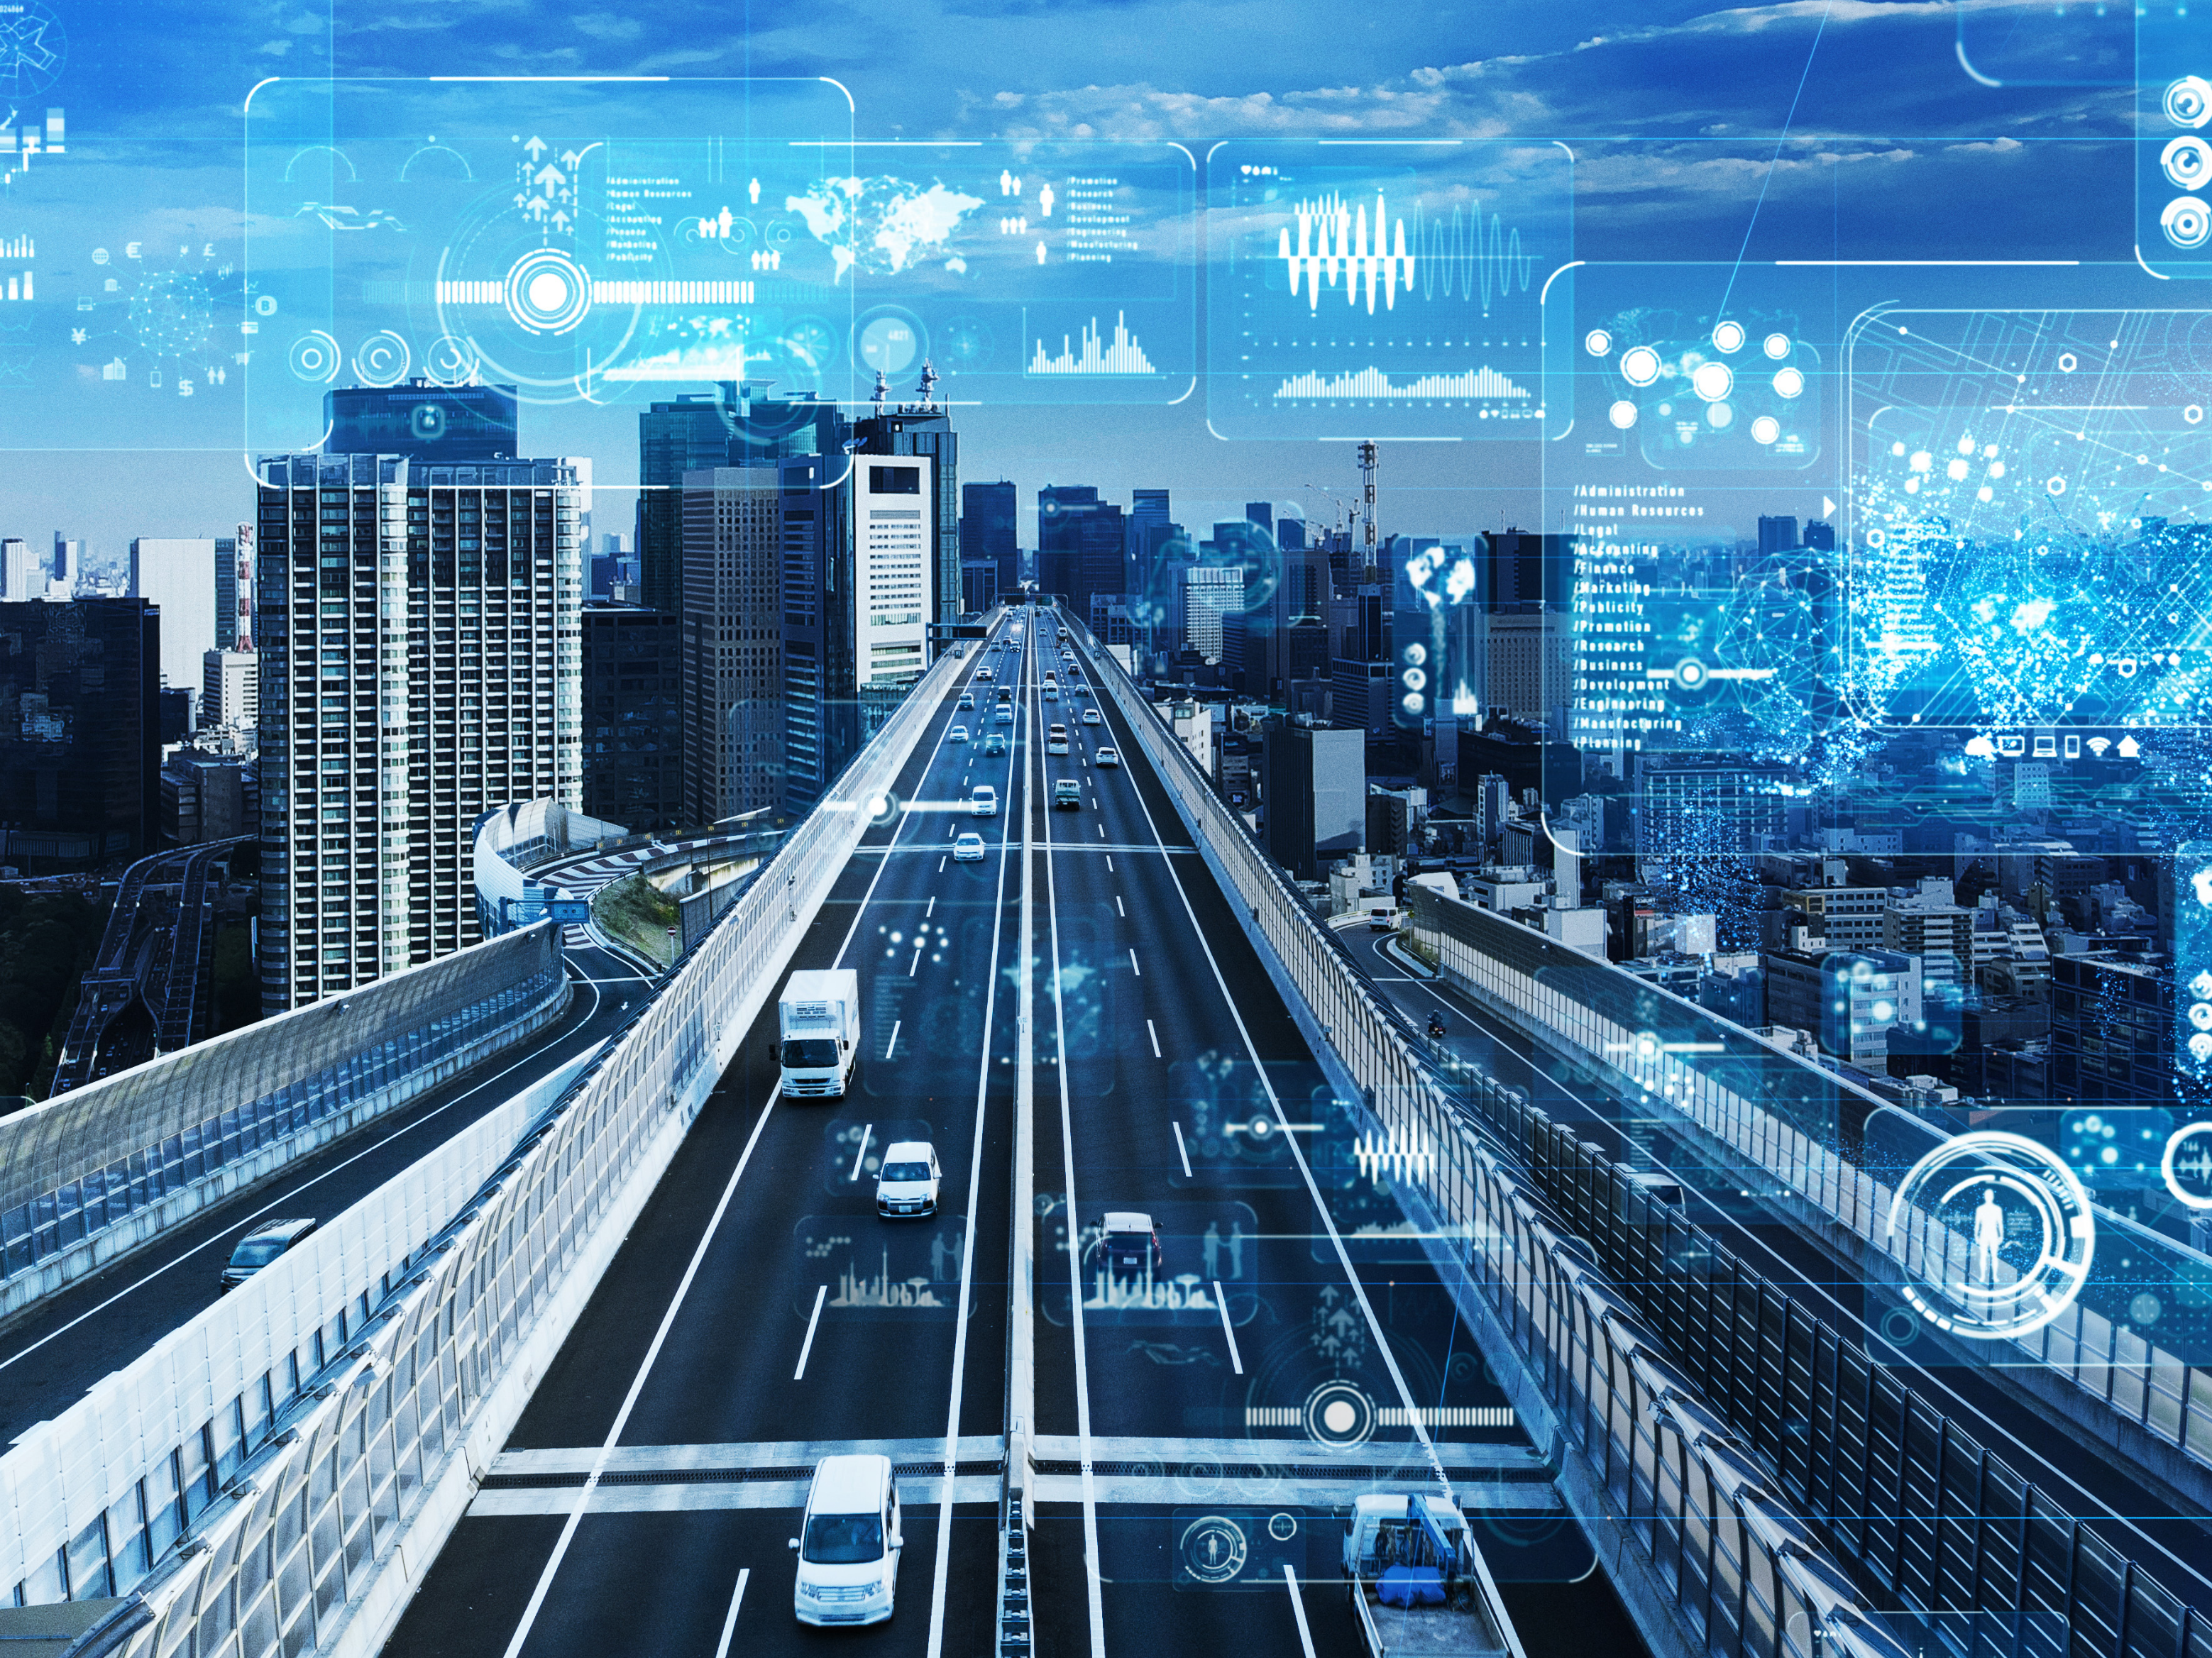 Automotive supply chain visibility